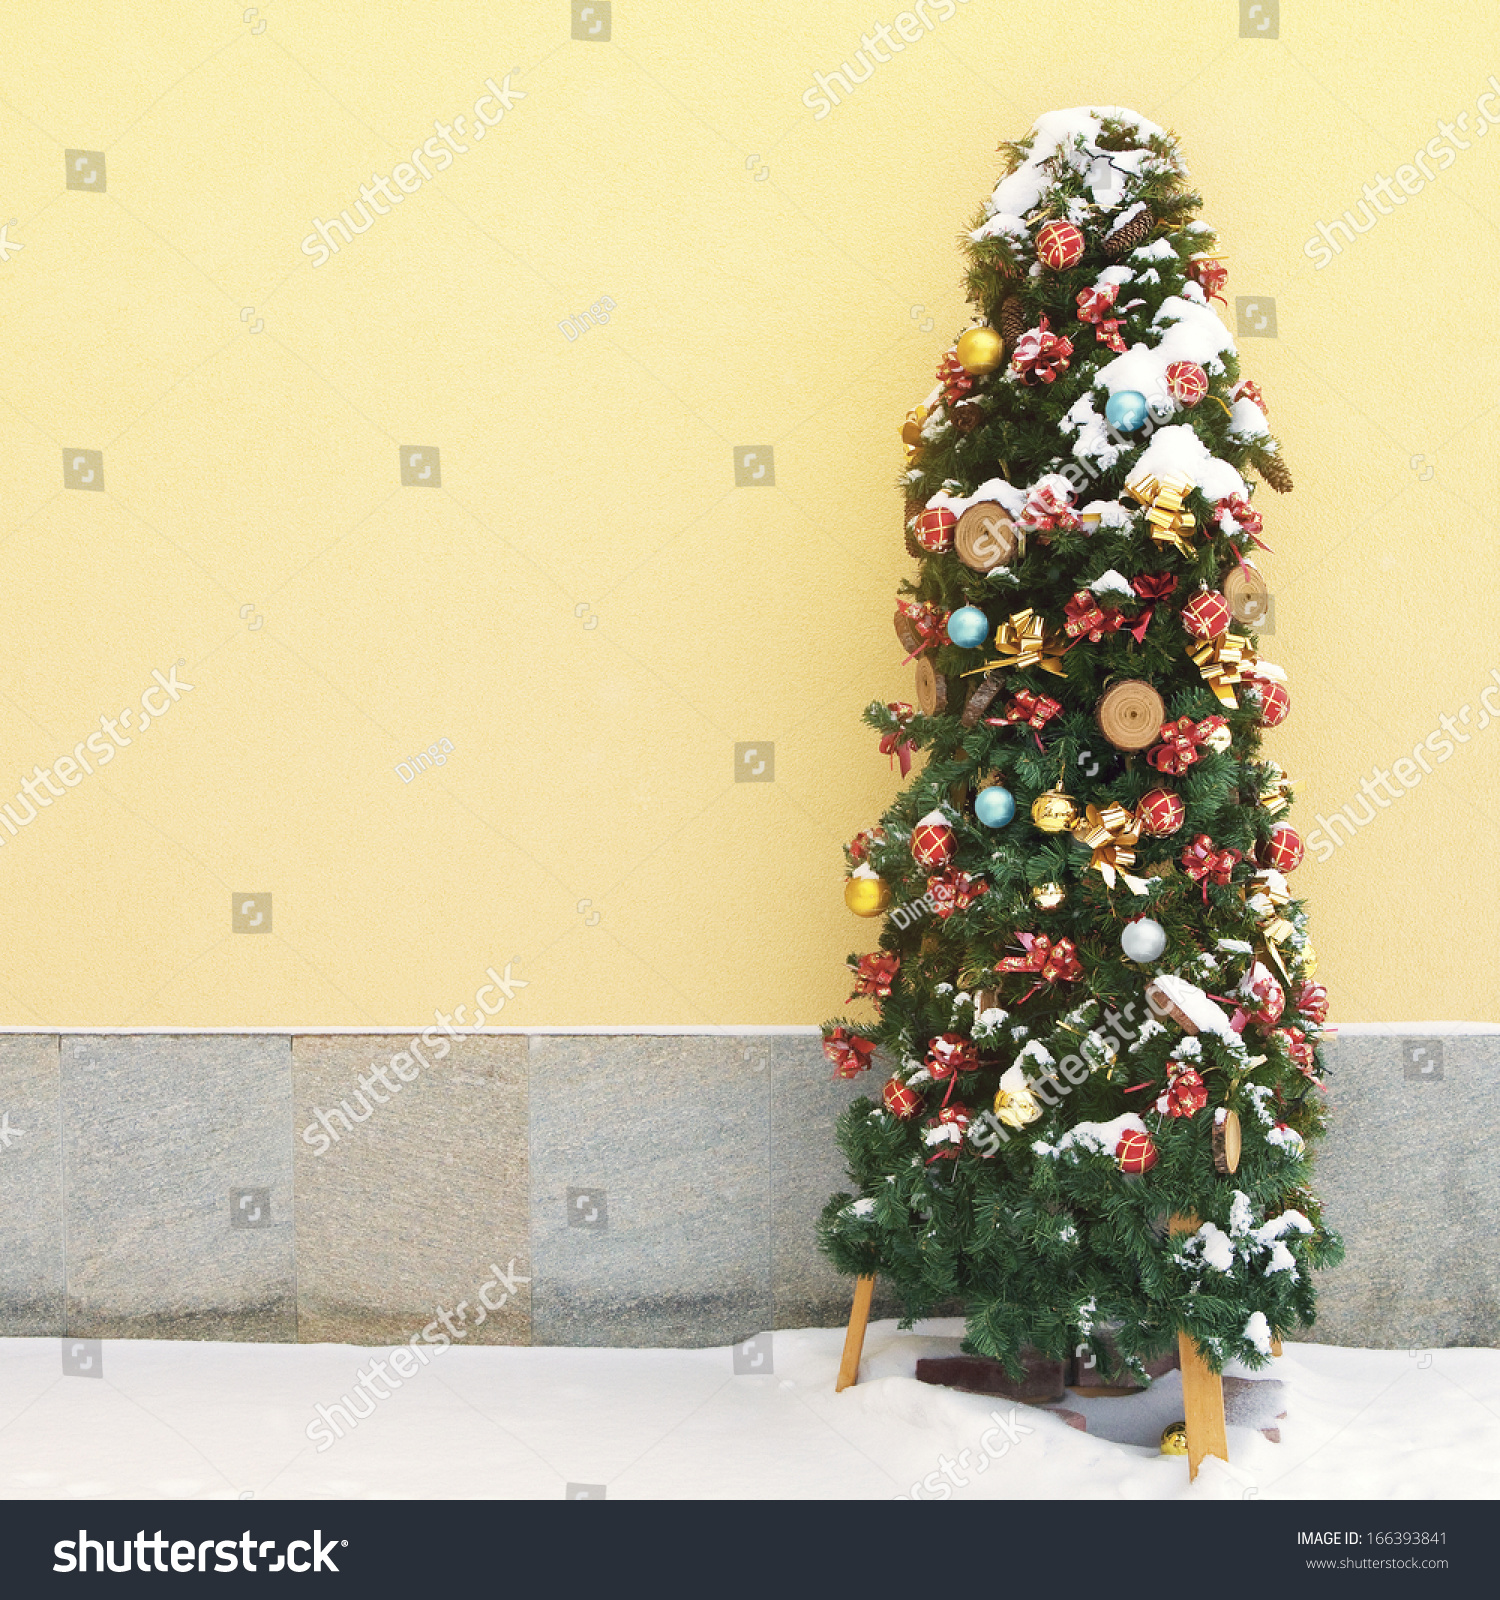 Series of images setting up a Christmas tree from putting up the ...